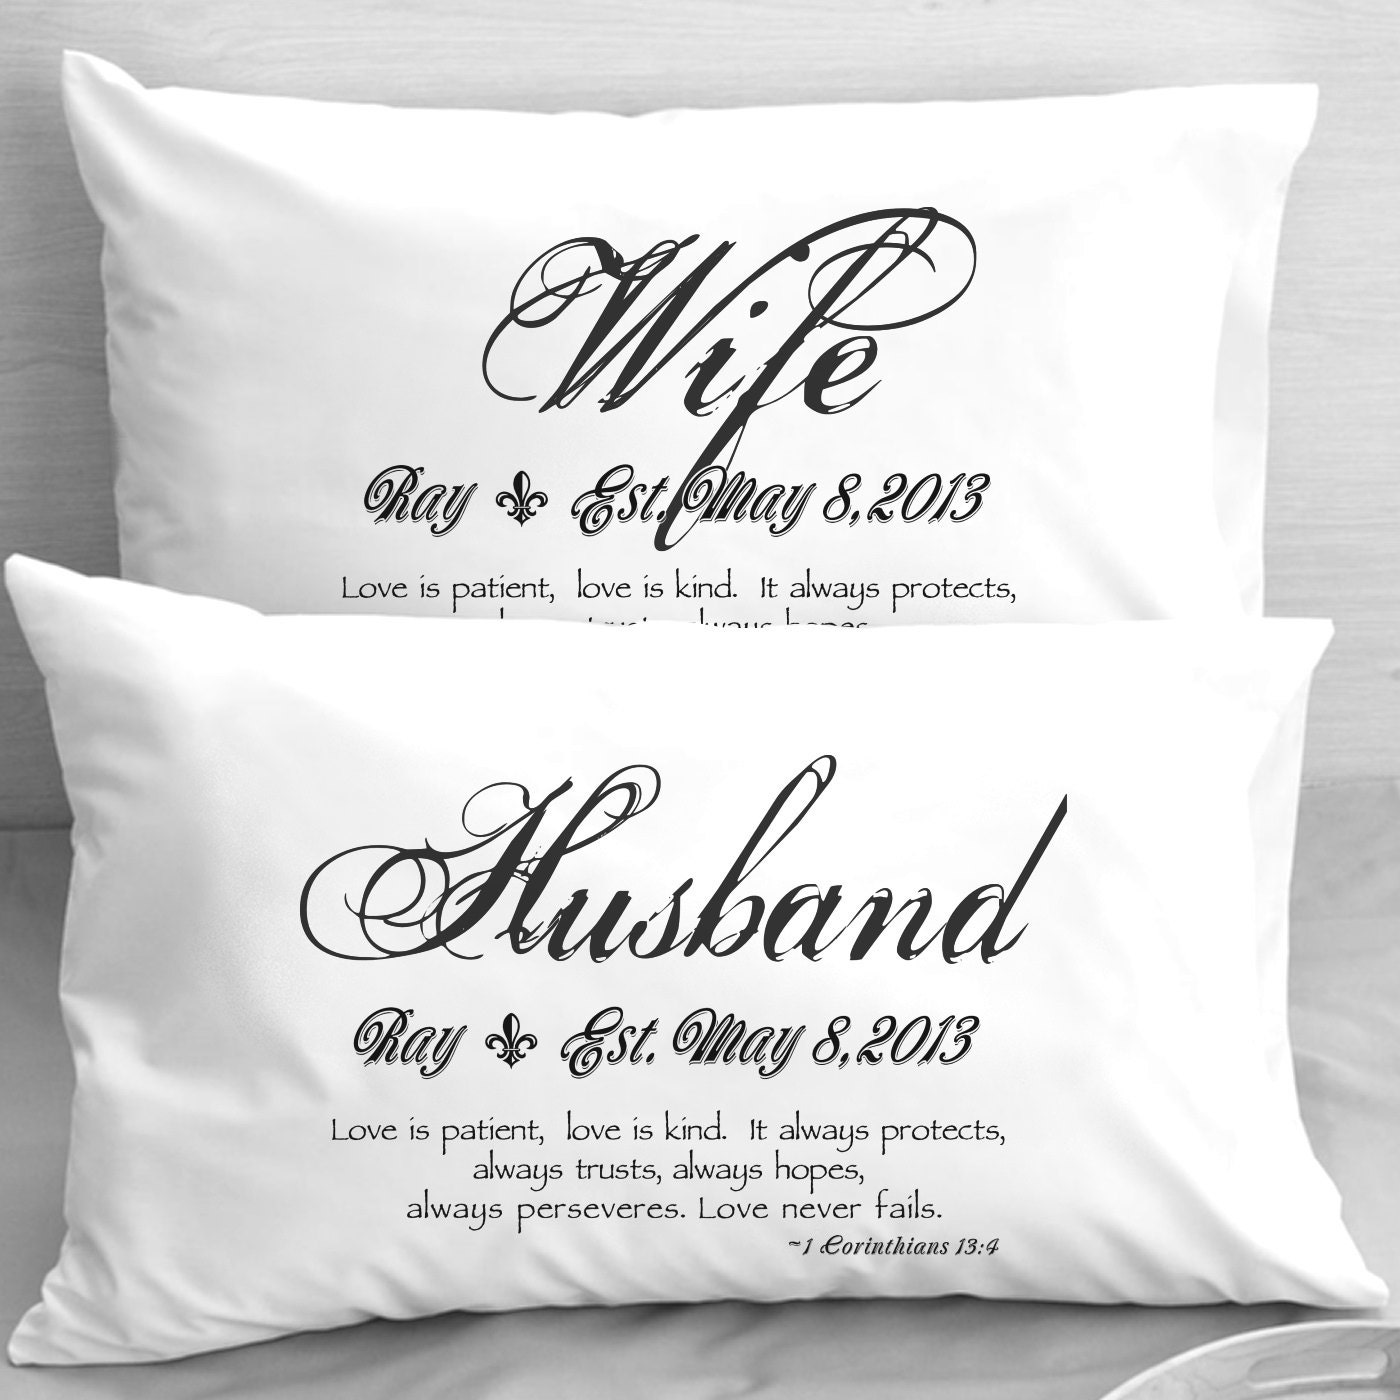 Wedding Anniversary Ideas Husband : Wedding Anniversary Gifts: Wedding Anniversary Gifts For Husband ...